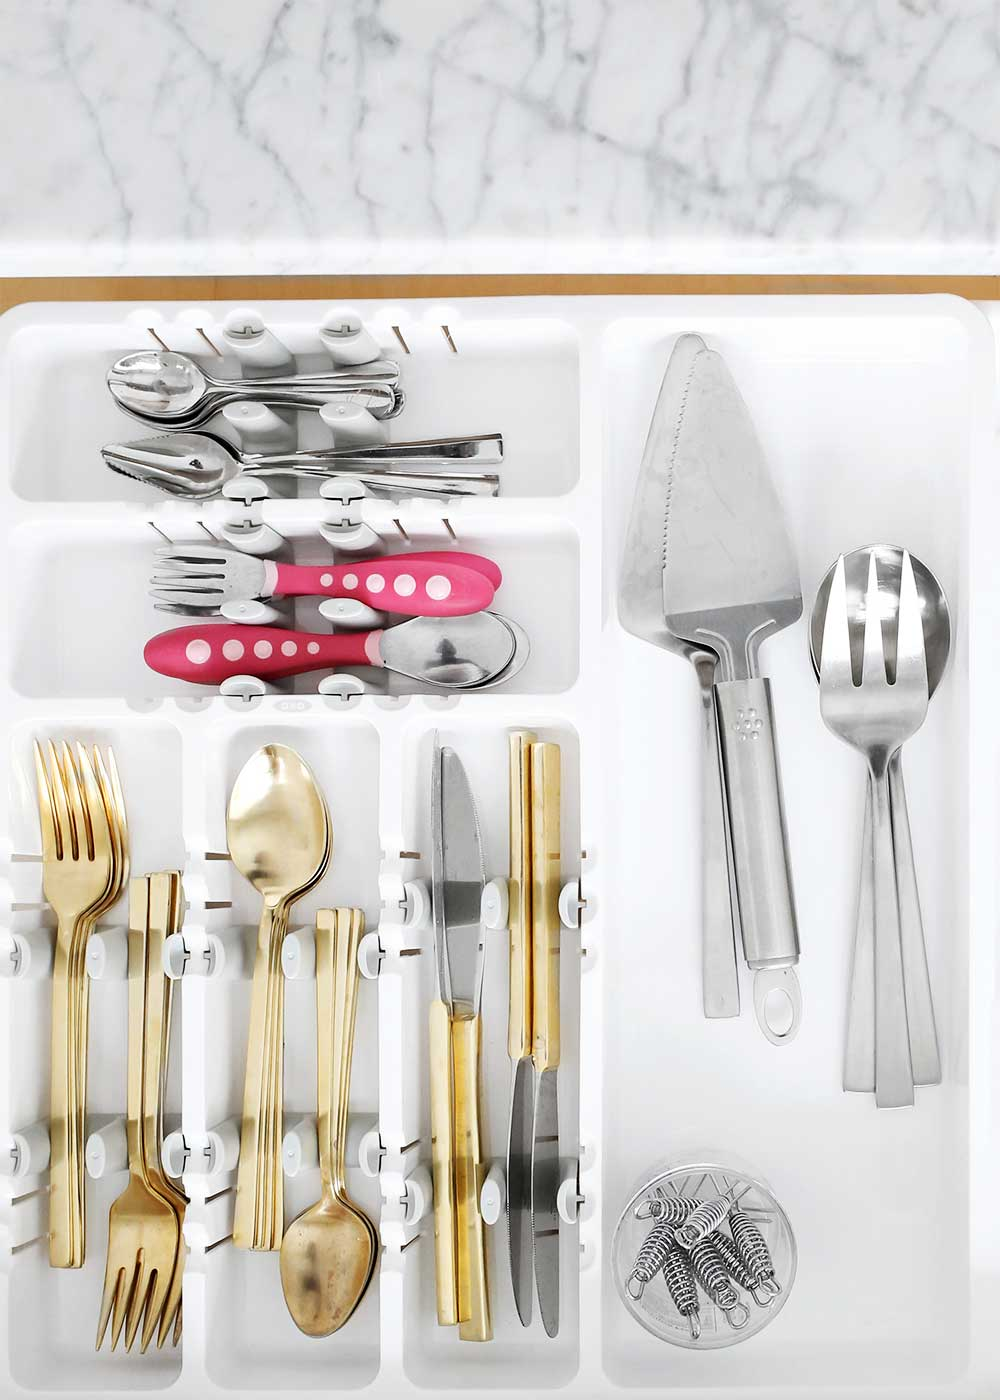 Organized drawers with OXO and The Fauxmartha